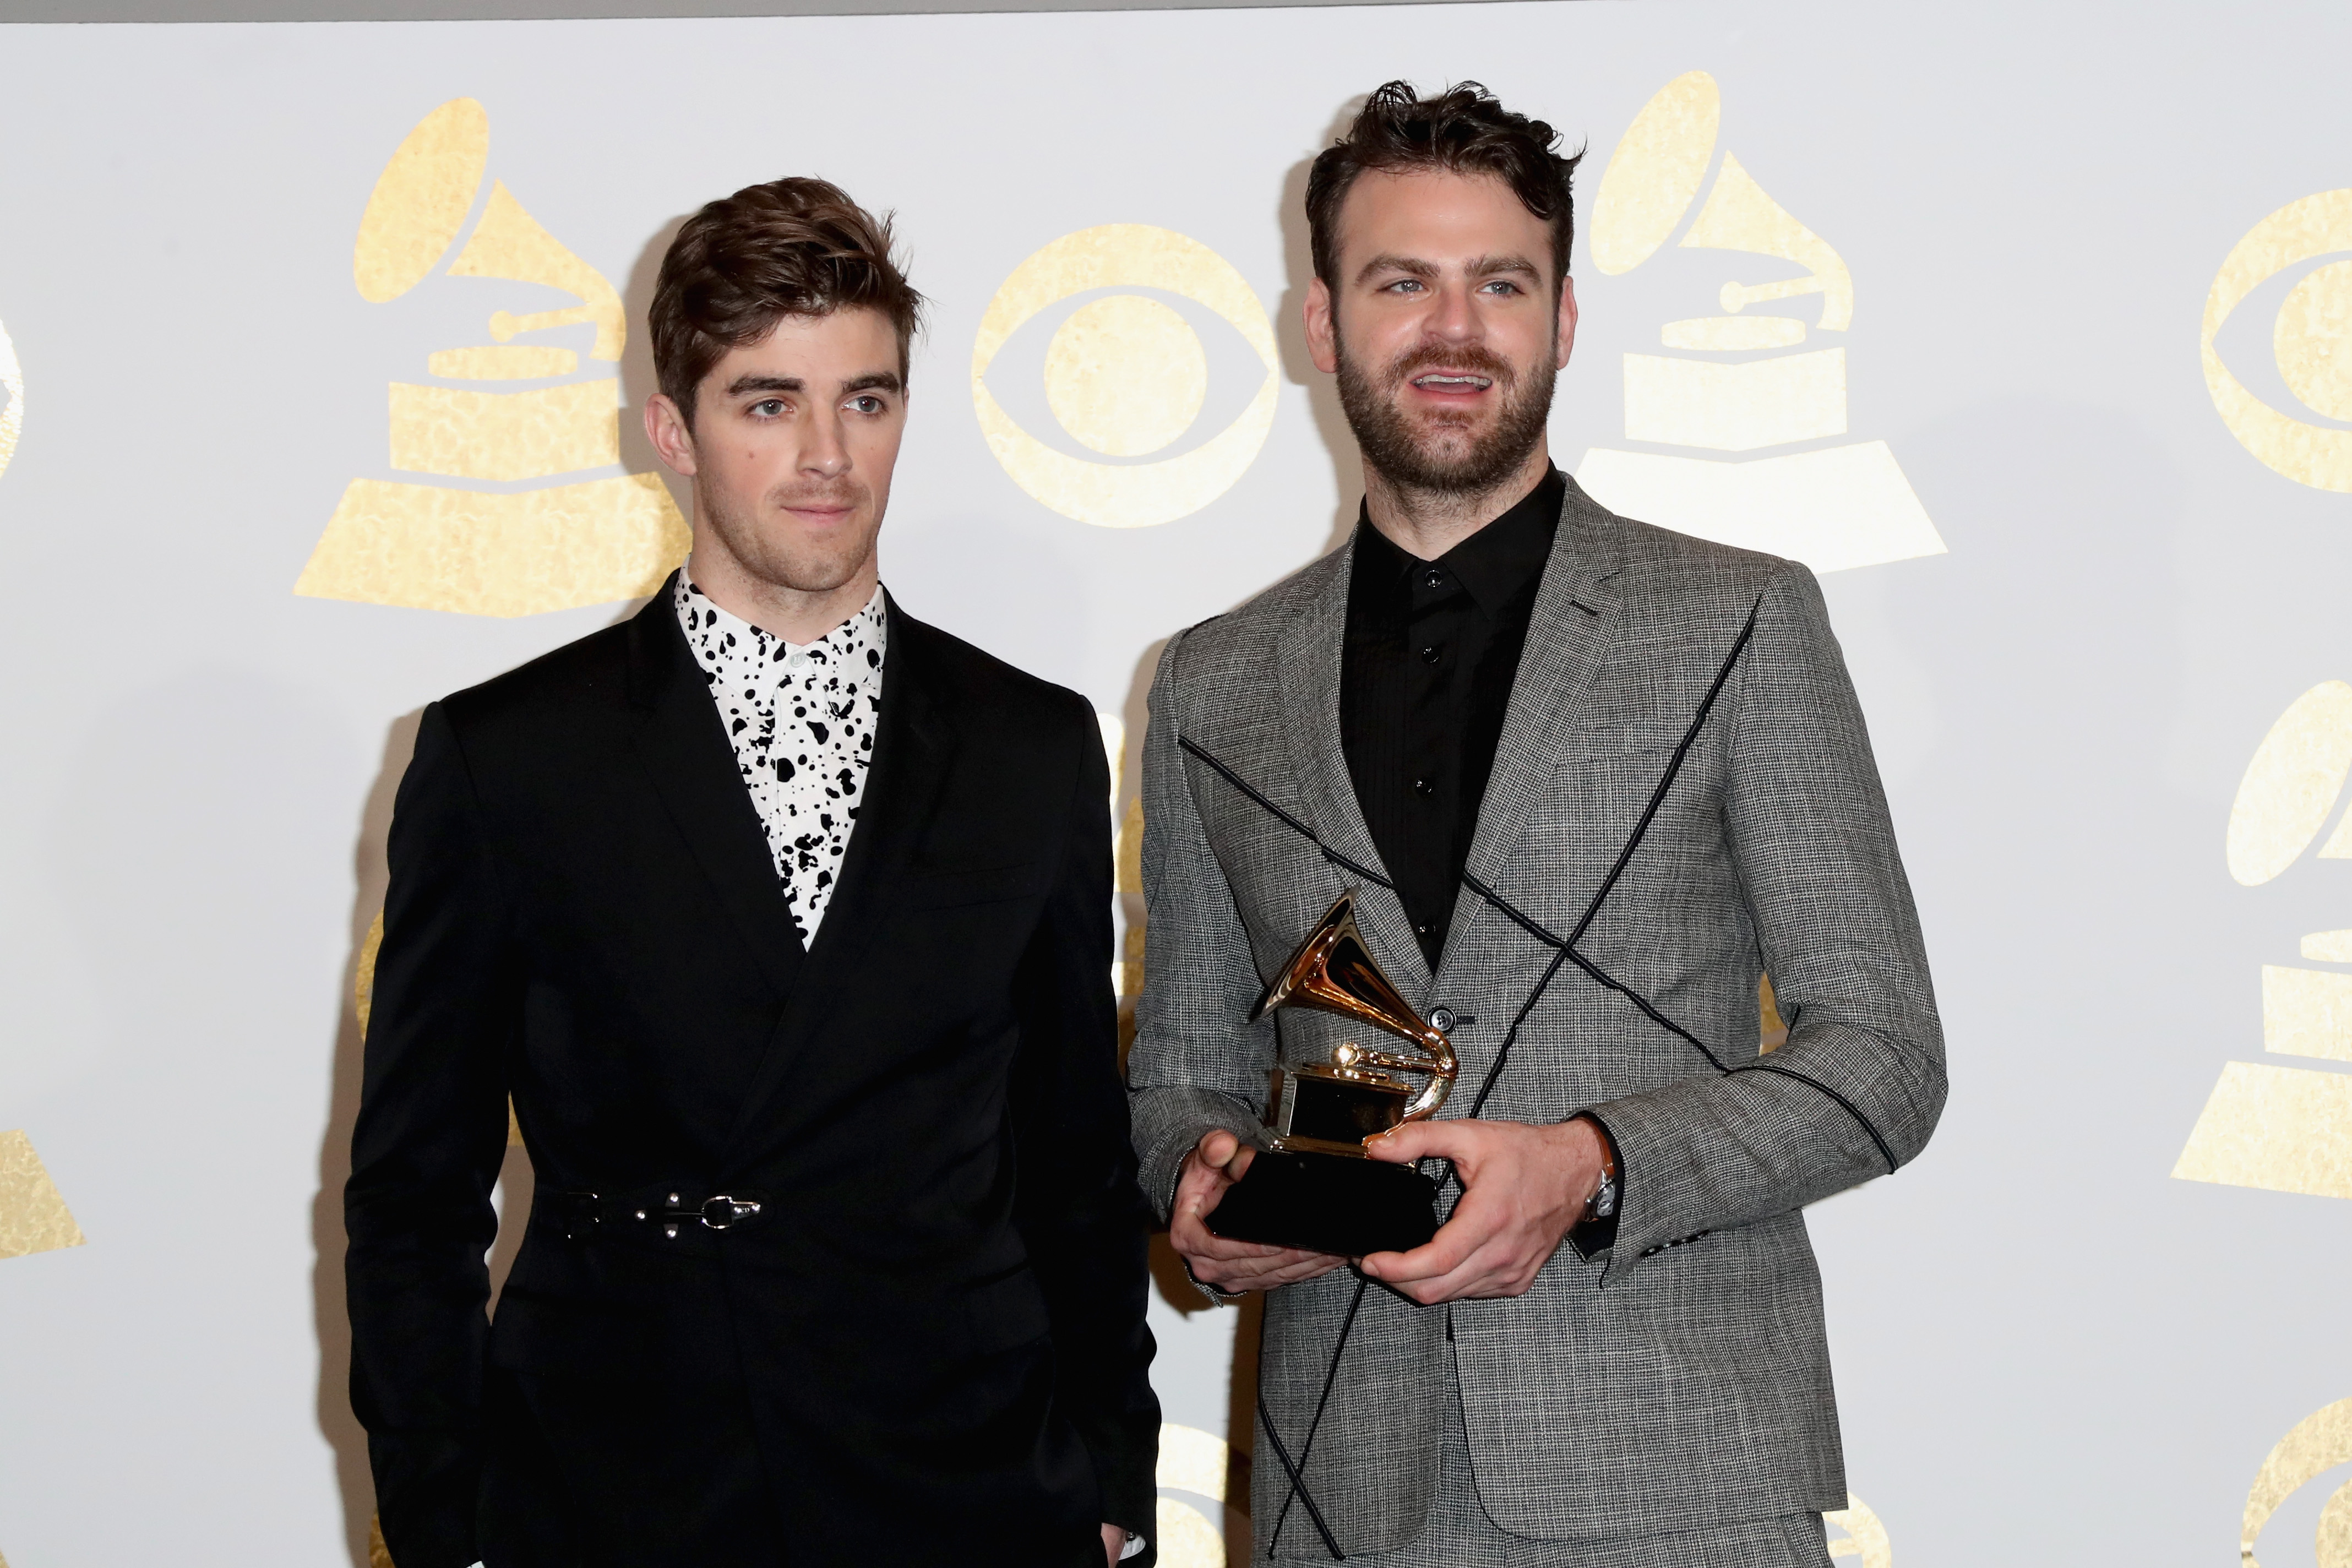 Andrew Taggart (L) and Alex Pall of The Chainsmokers pose during The 59th GRAMMY Awards on February 12, 2017 in Los Angeles, California. (Photo by Frederick M. Brown/Getty Images)